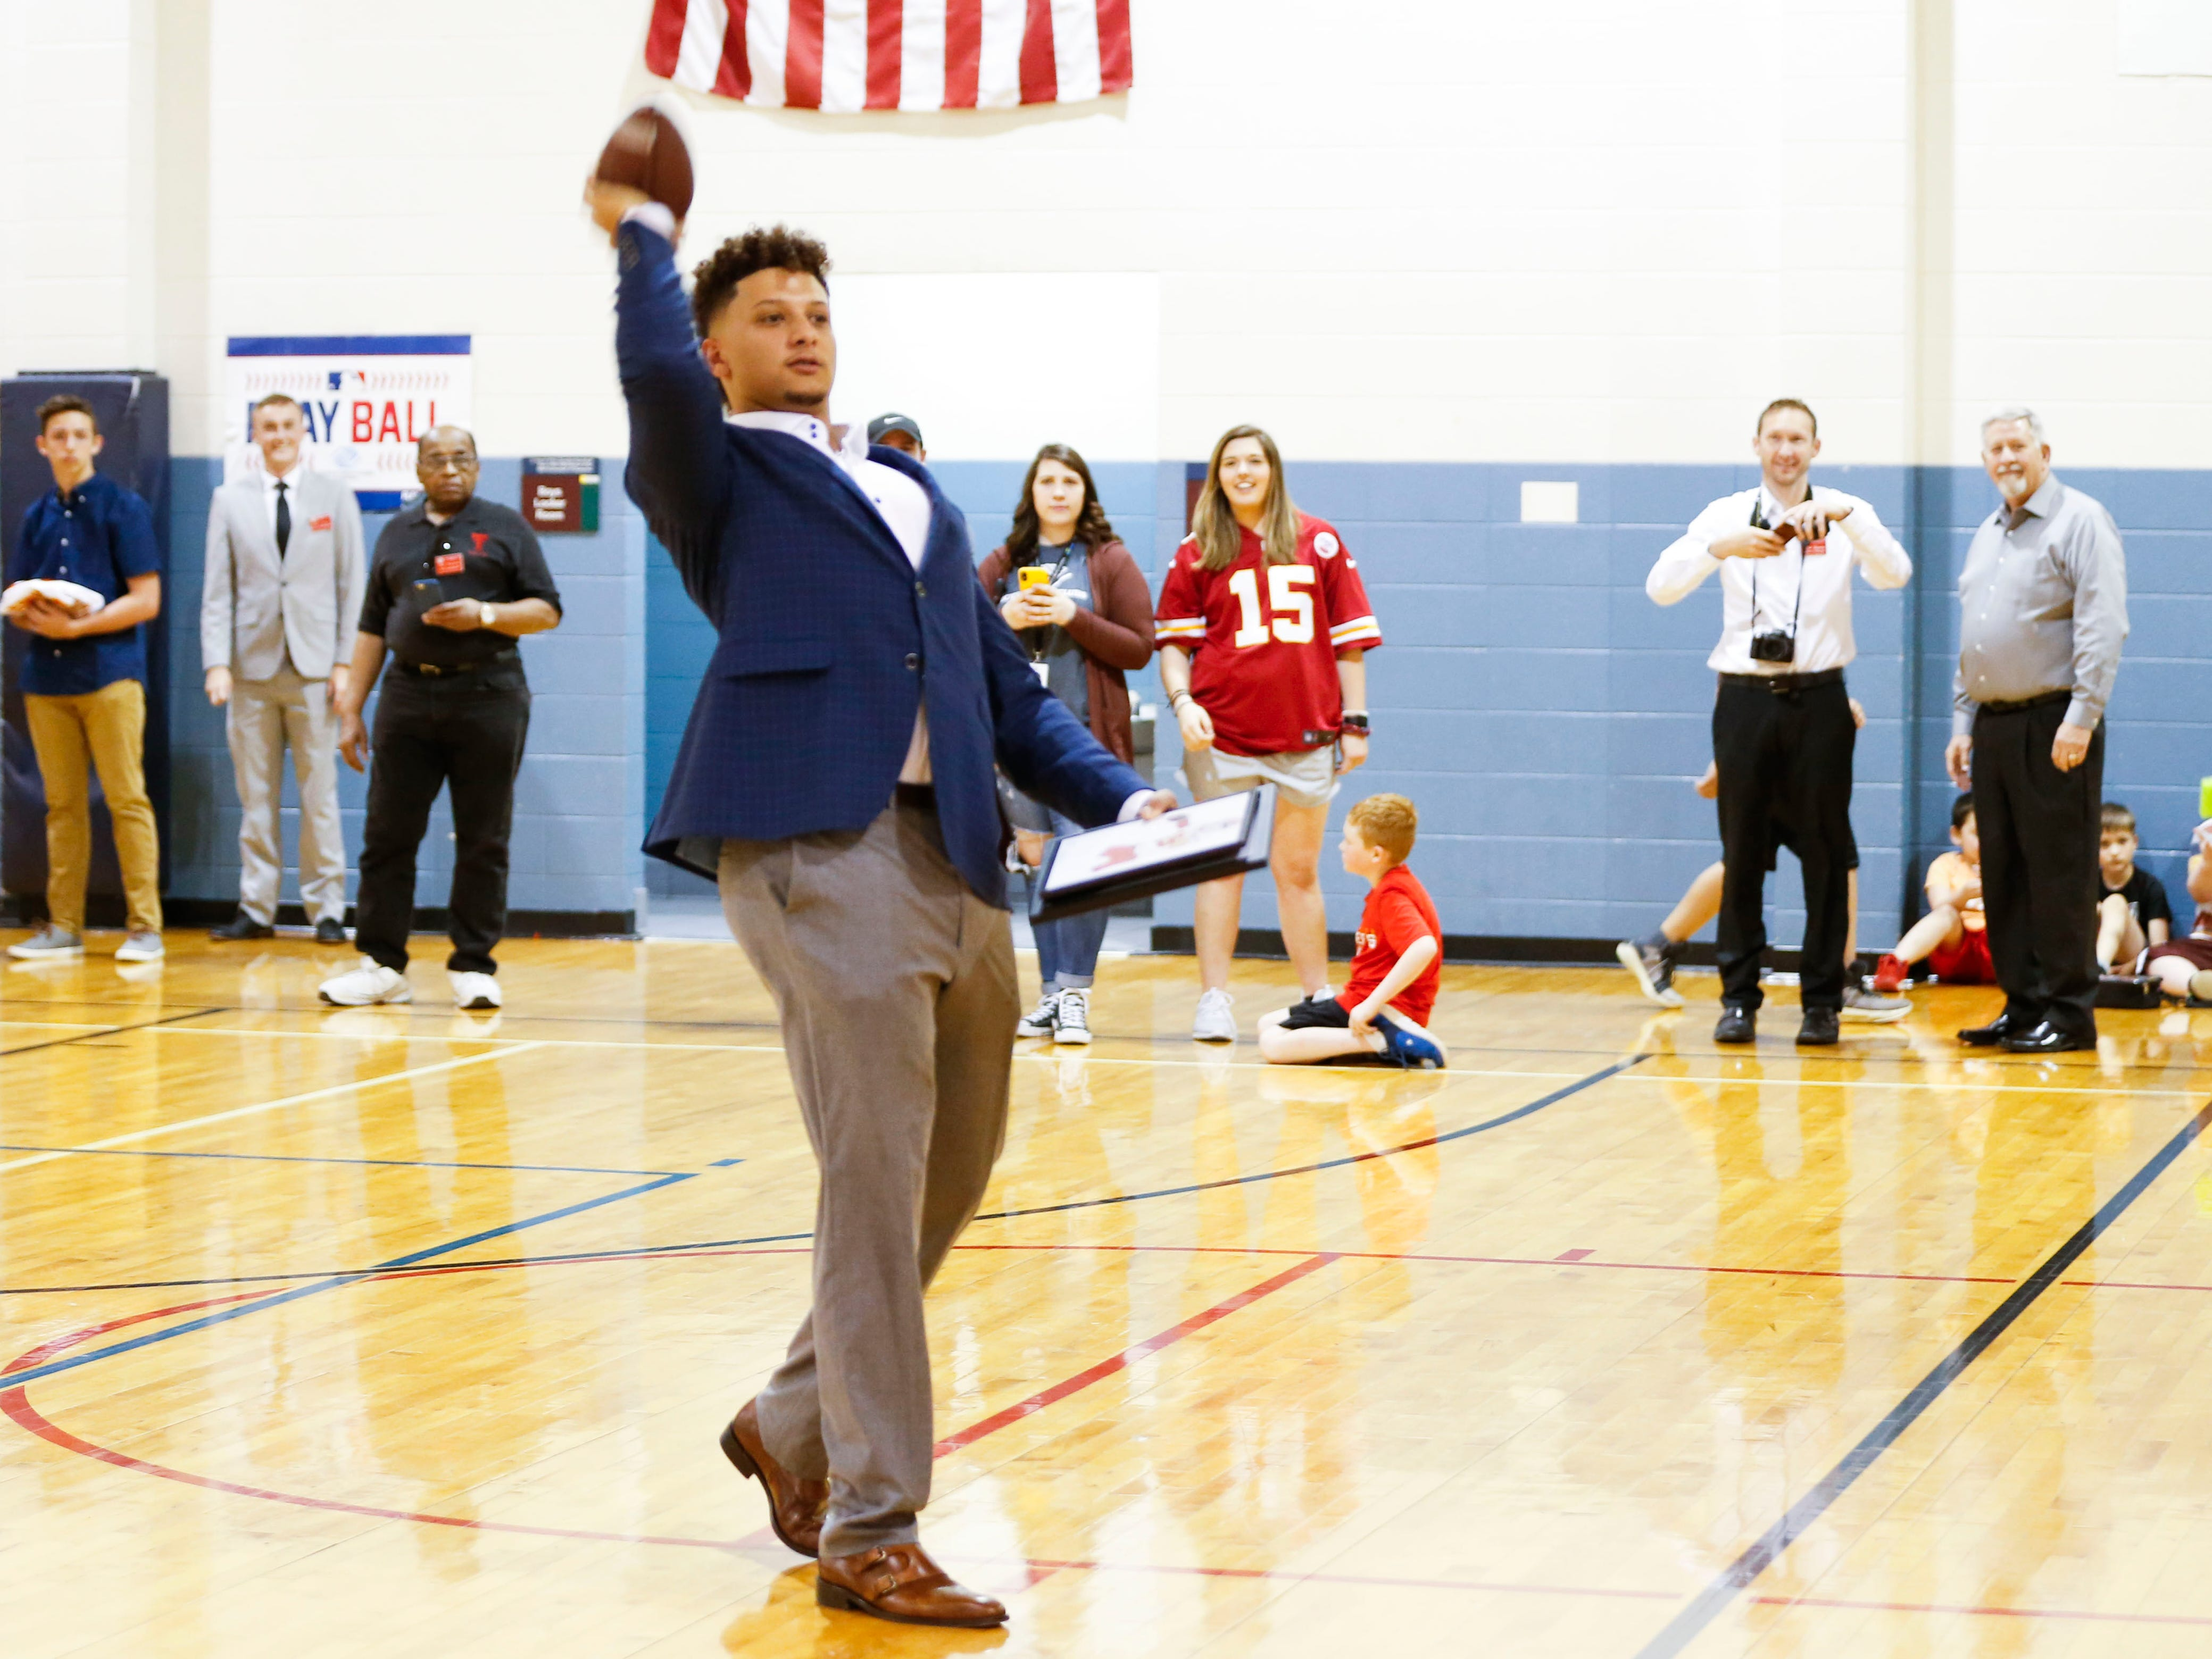 Patrick Mahomes II tosses a football back to a kid in the crowd while speaking at the Boys & Girls Clubs of Springfield on Tuesday, April 9, 2019.